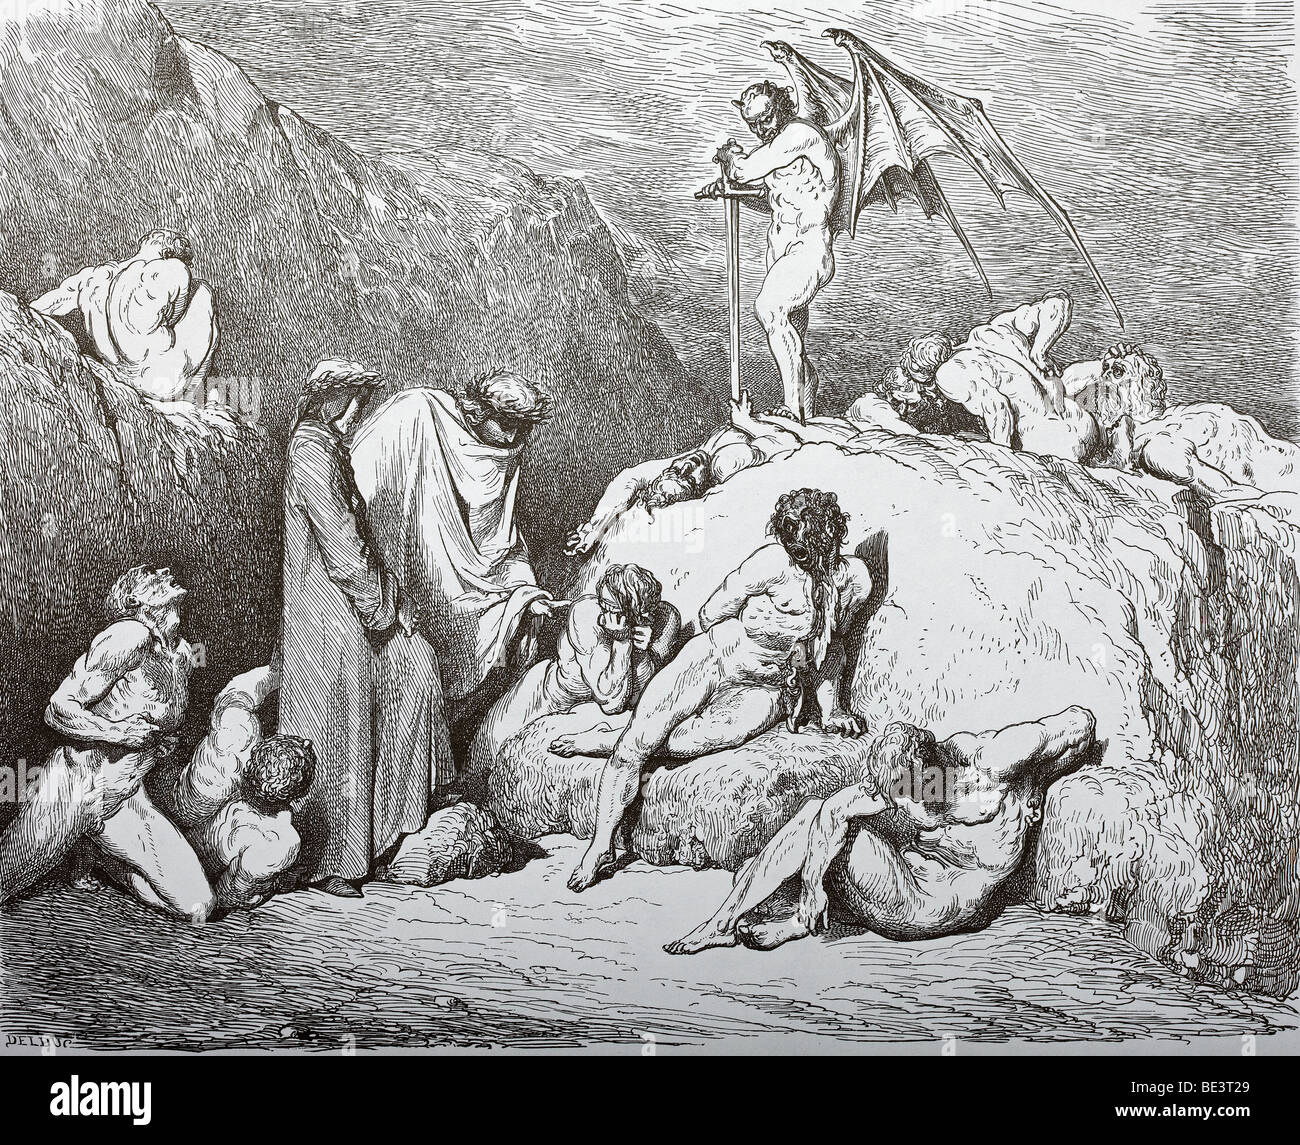 Gustave Dore's Illustration 'Sower of Discord' from Dante's Divine Comedy - Stock Image